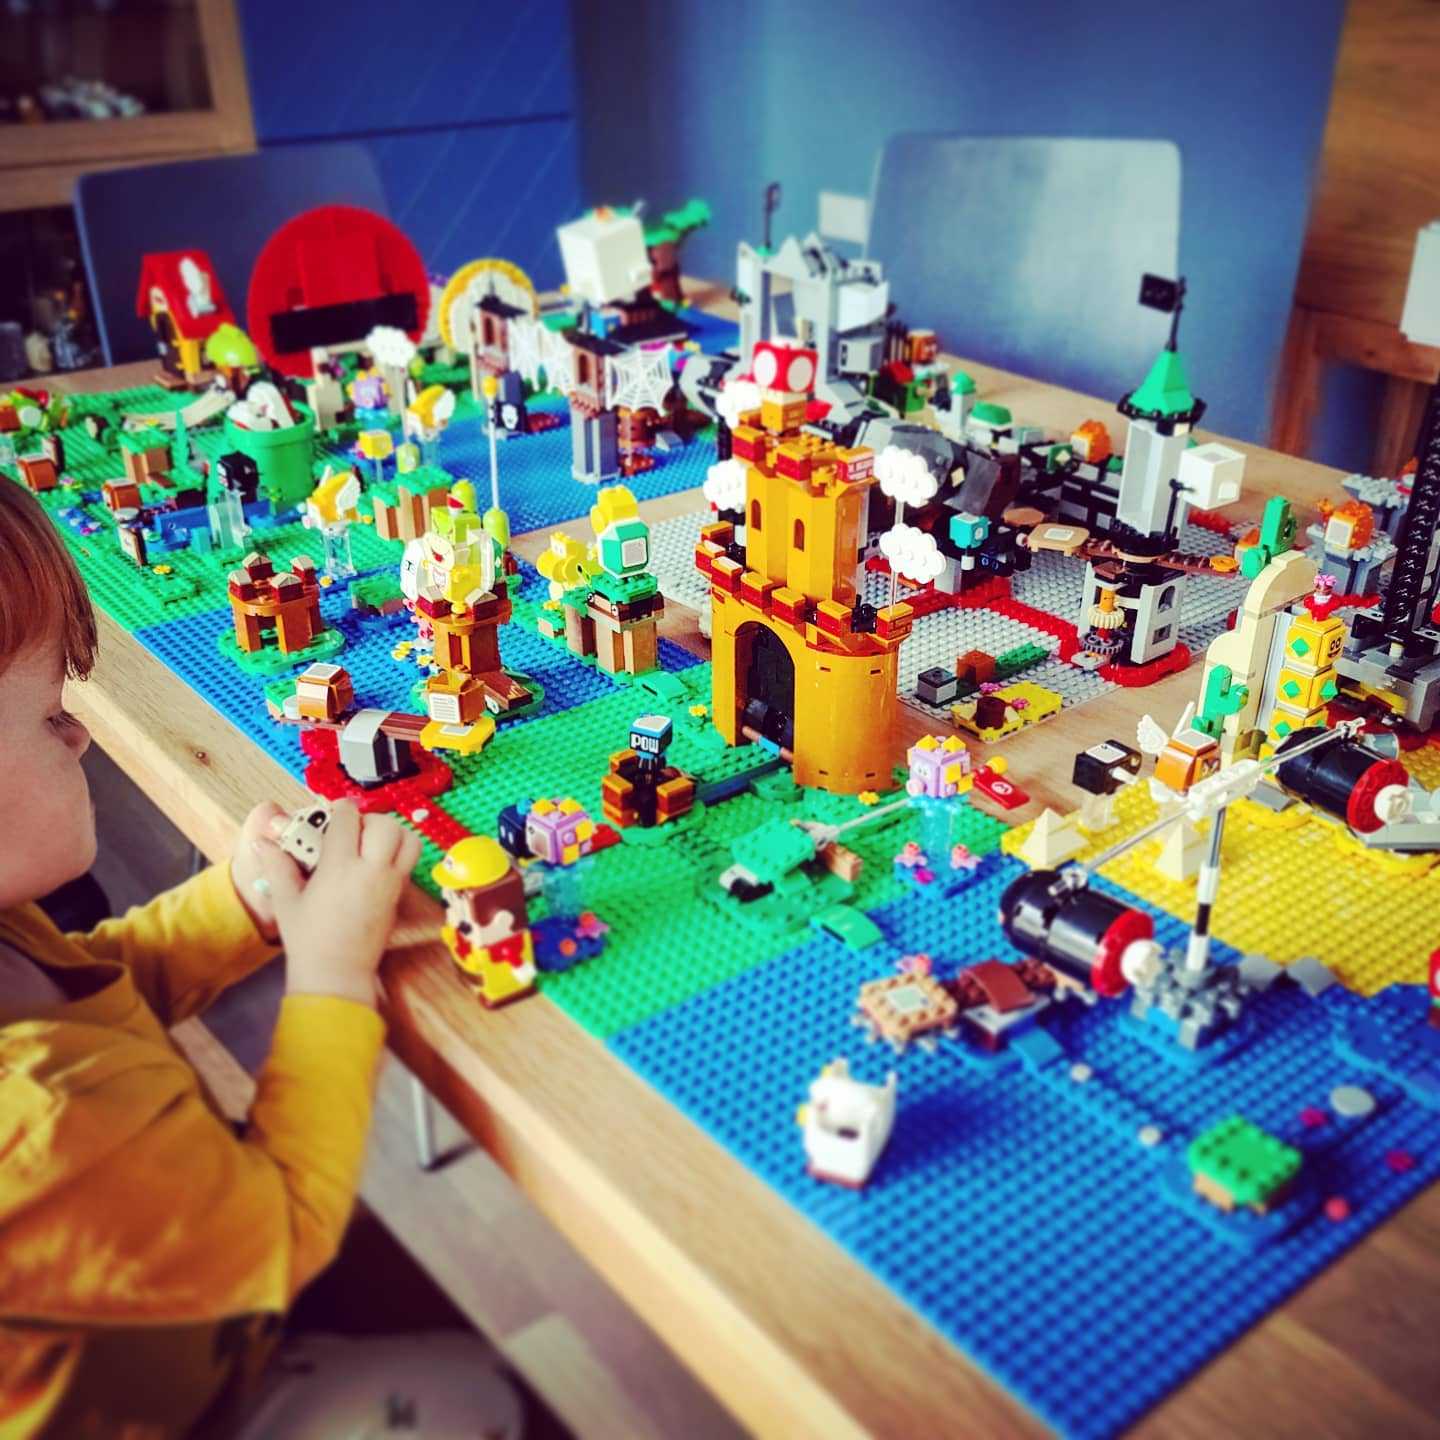 I guess we need a new dining room now. #mariolego